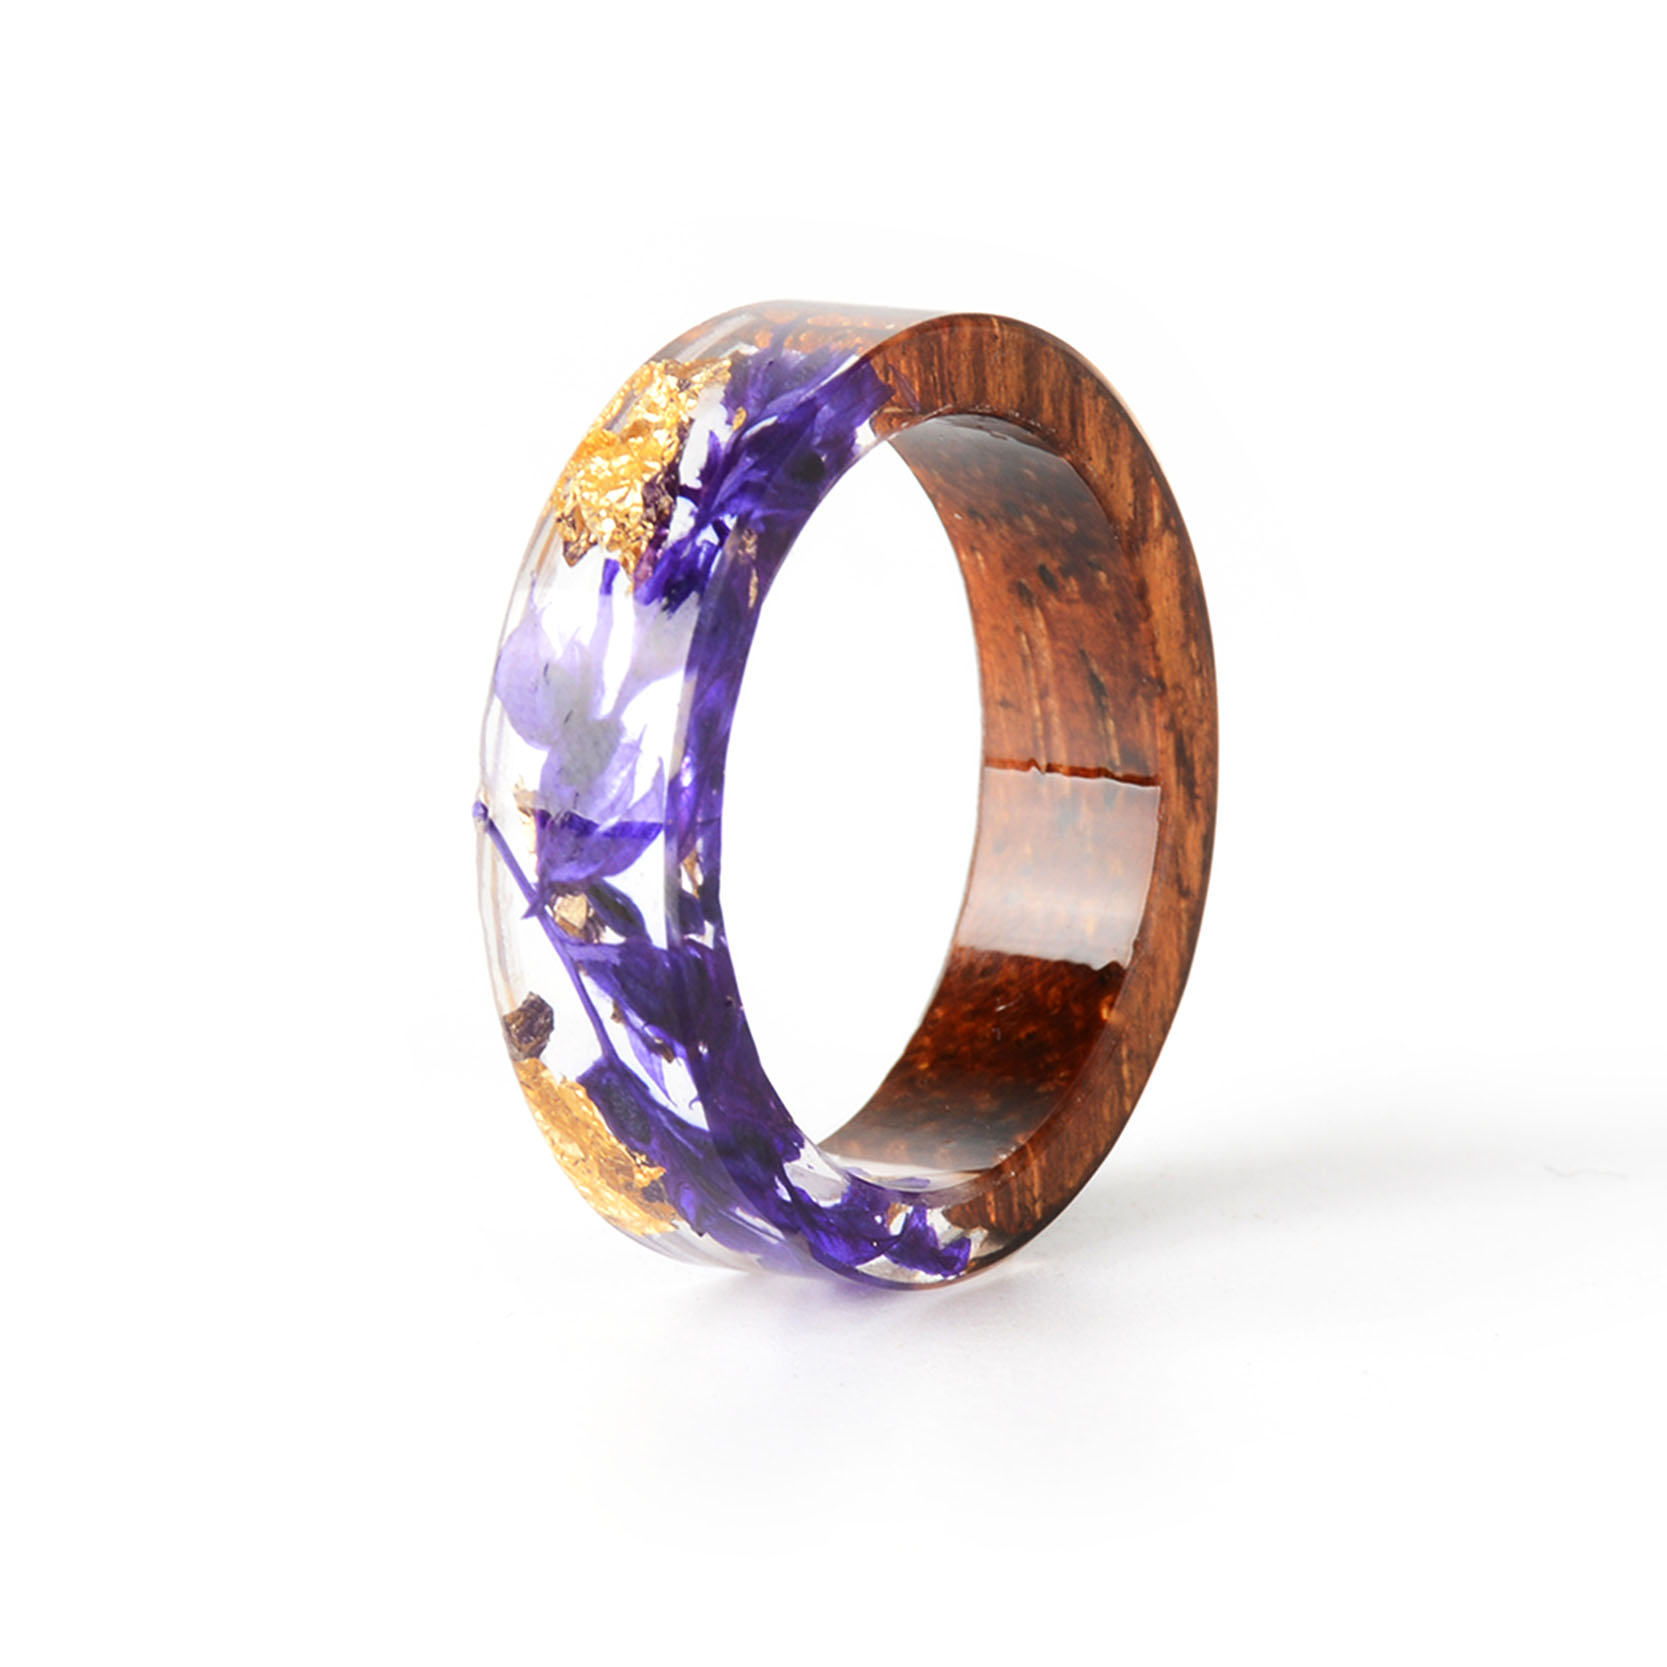 Handmade Wood Resin Ring Many Styles 23